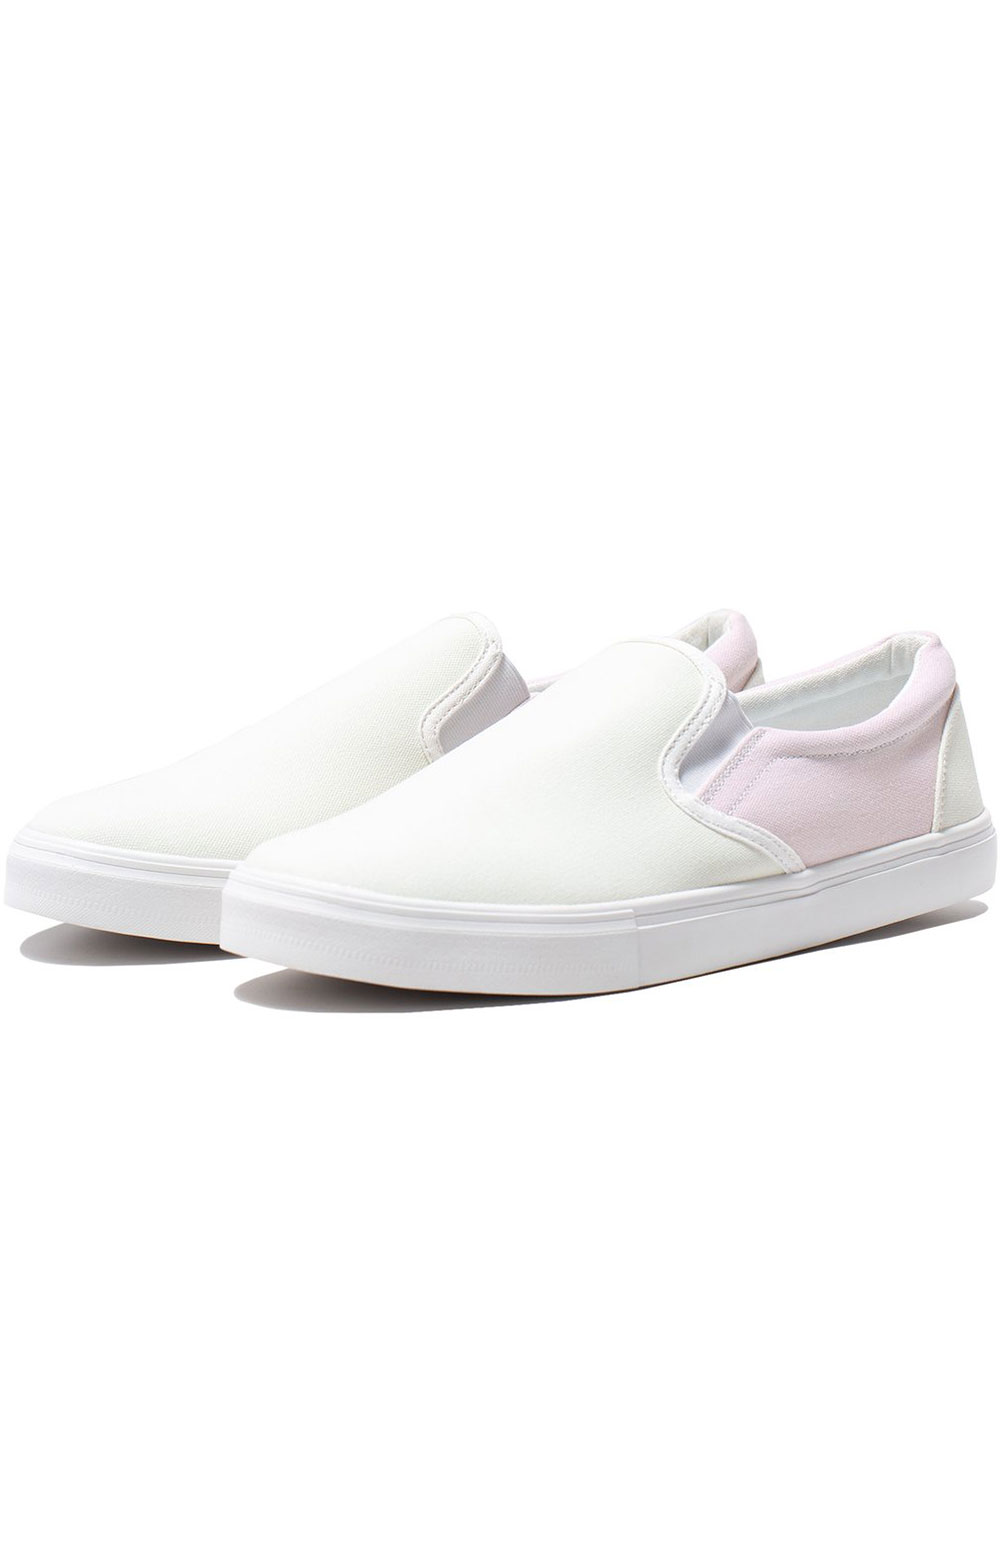 Lord Nermal UV Activated Slip-On Shoes - Blue/Fuschia 5